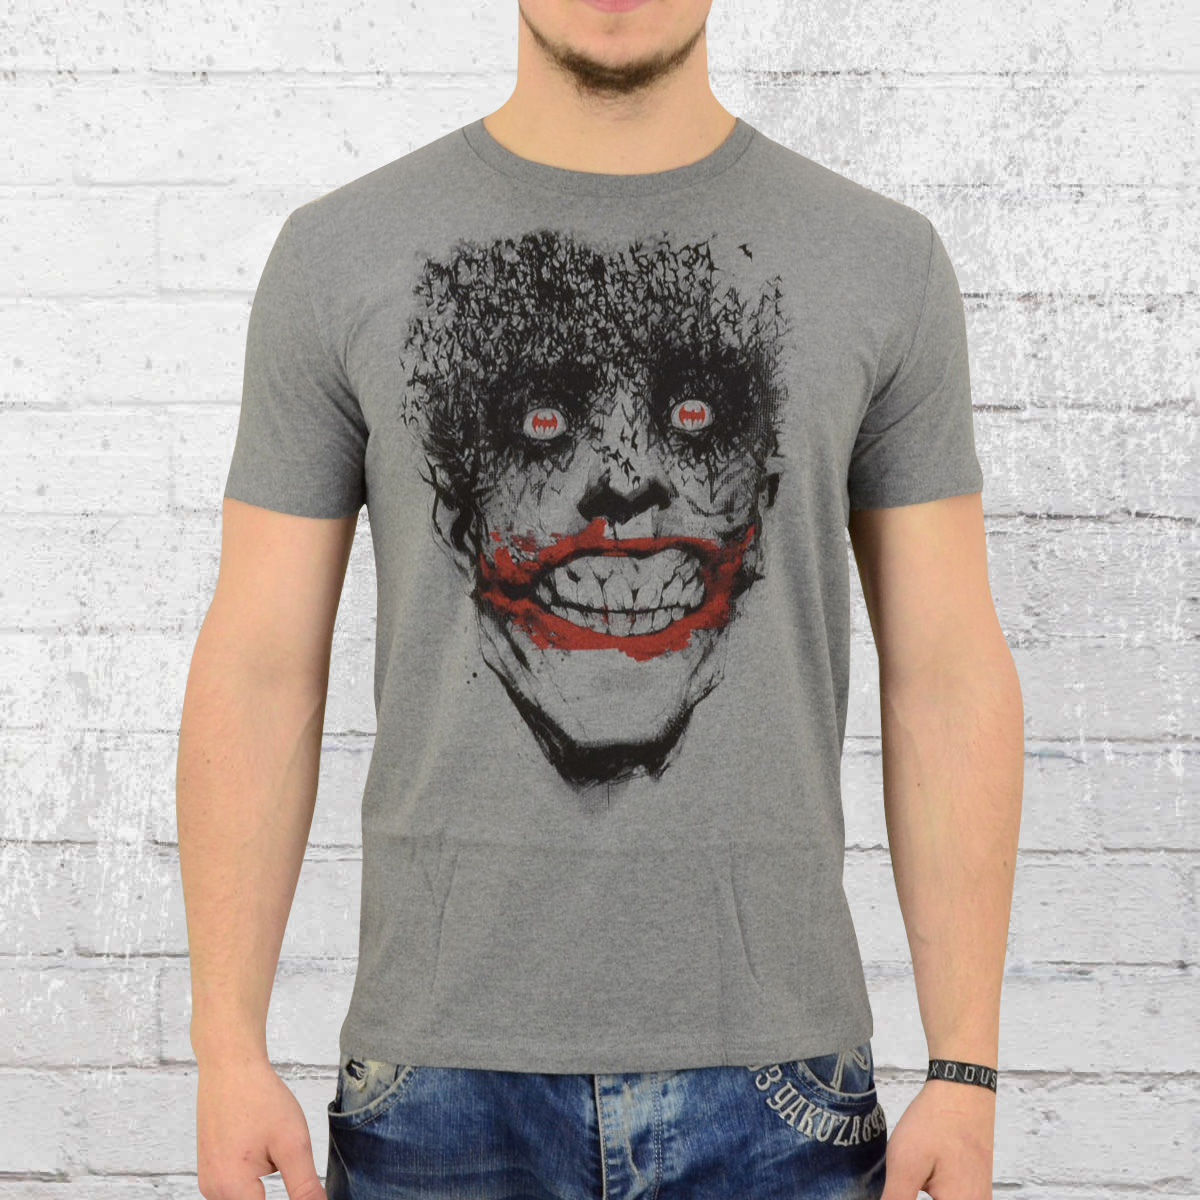 new arrival 3285c 2a427 Order now | Lolly and Rock Male T-Shirt Batman Joker grey ...